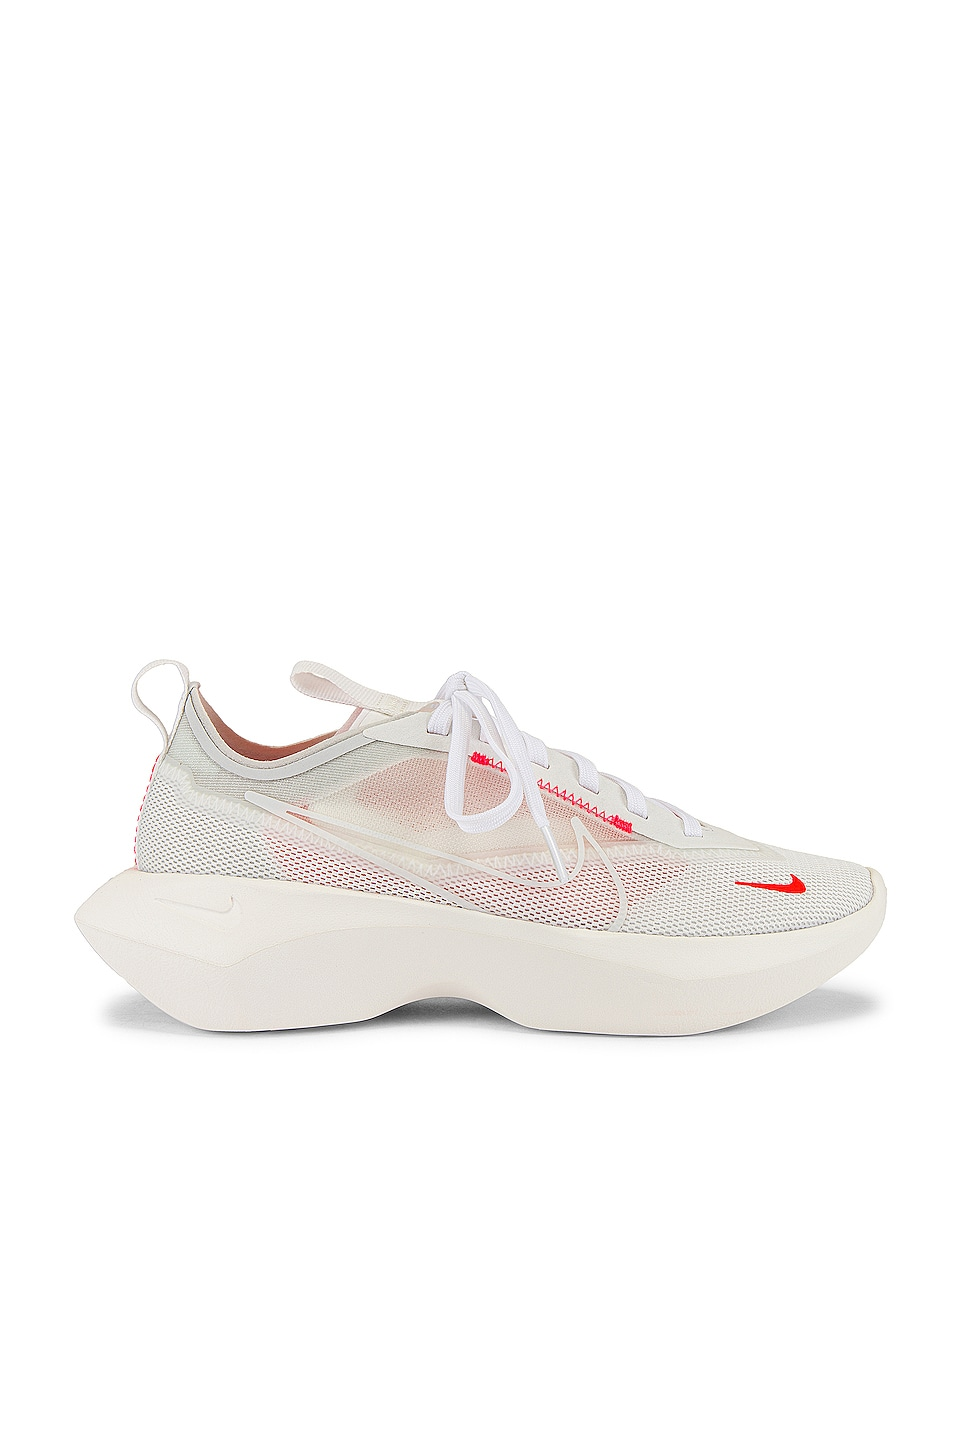 Nike Vista Lite Sneaker in White, Laser Crimson & Photon Dust